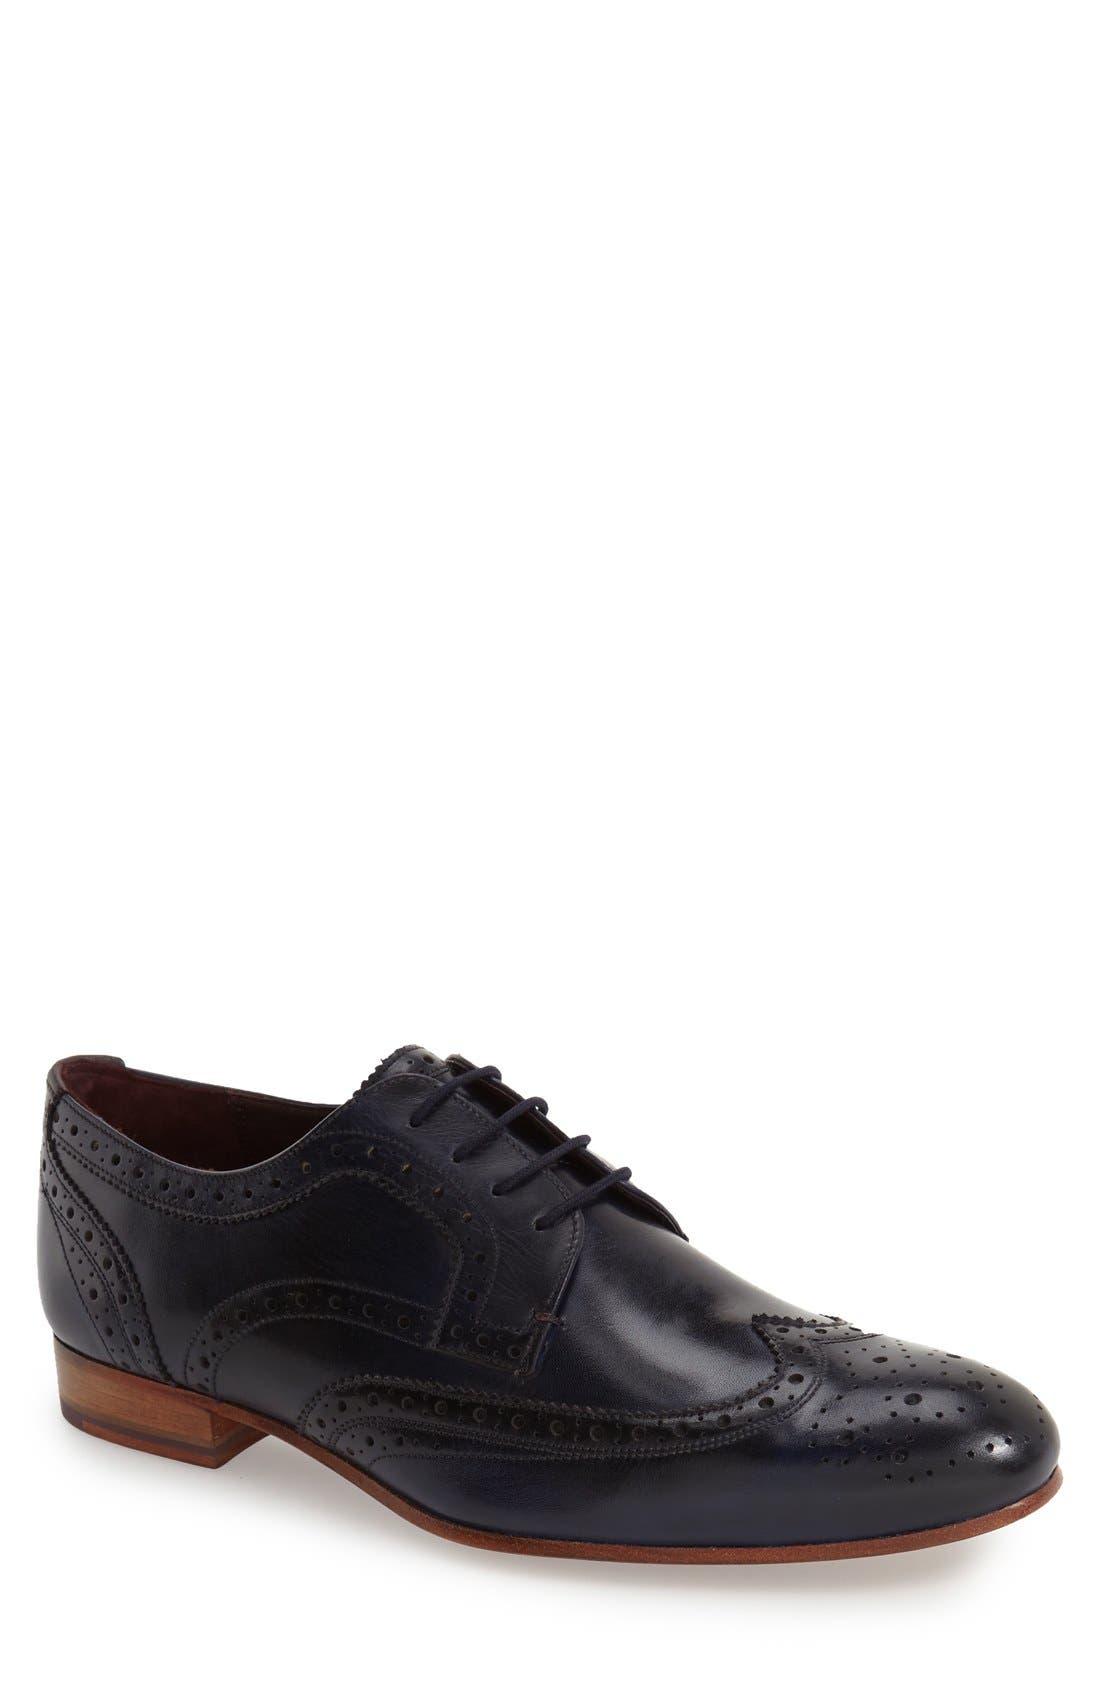 'Gryene' Wingtip Oxford,                             Main thumbnail 1, color,                             Dark Blue